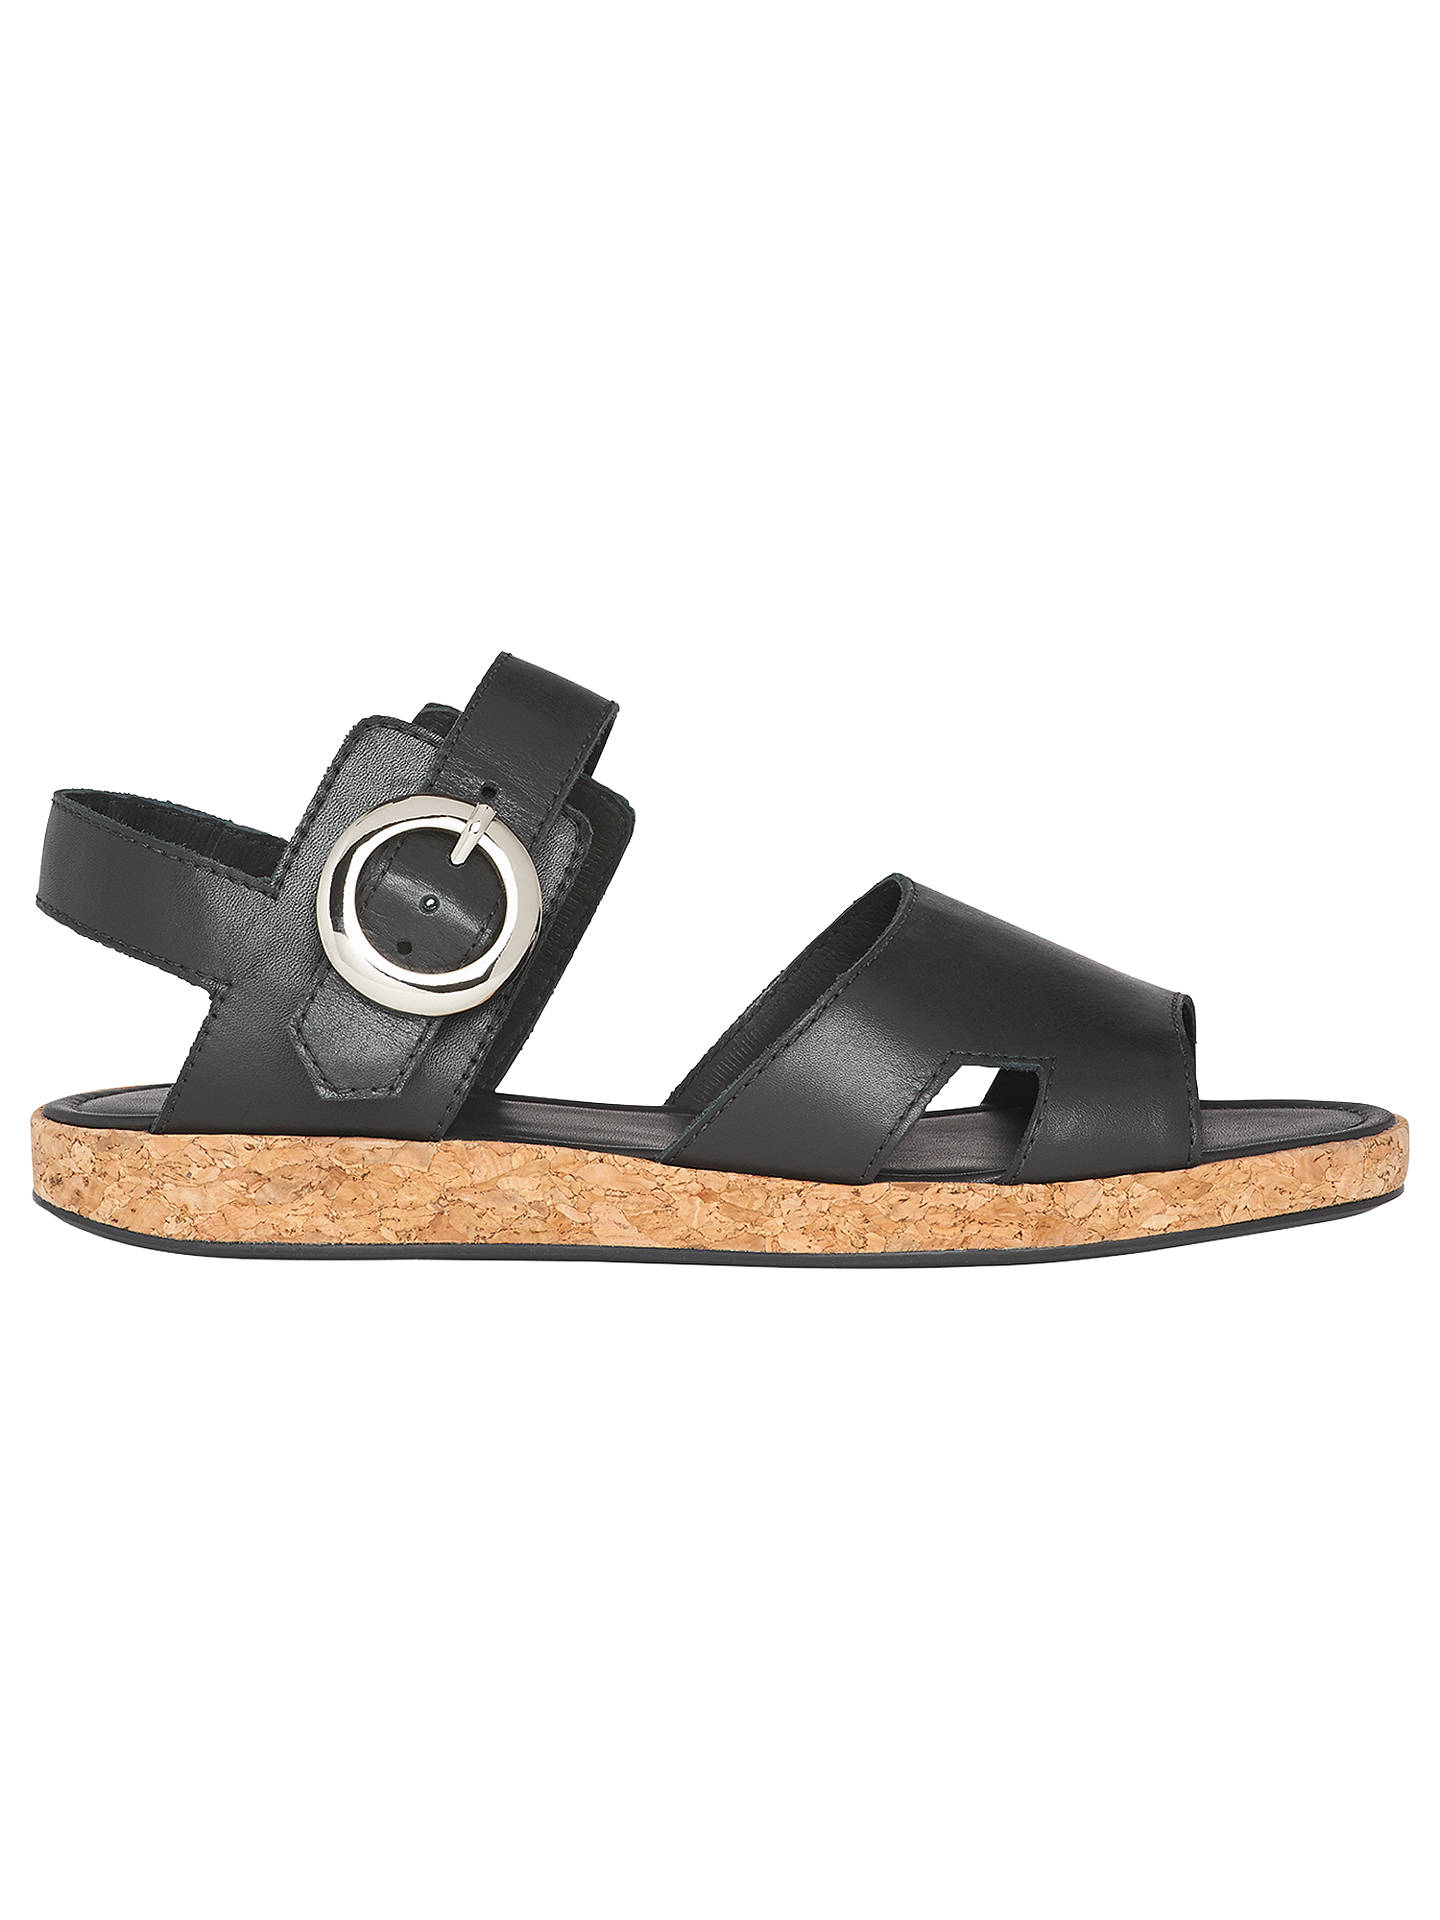 b5c0d4c6986d2e Buy Whistles Maddox Flatform Sandals